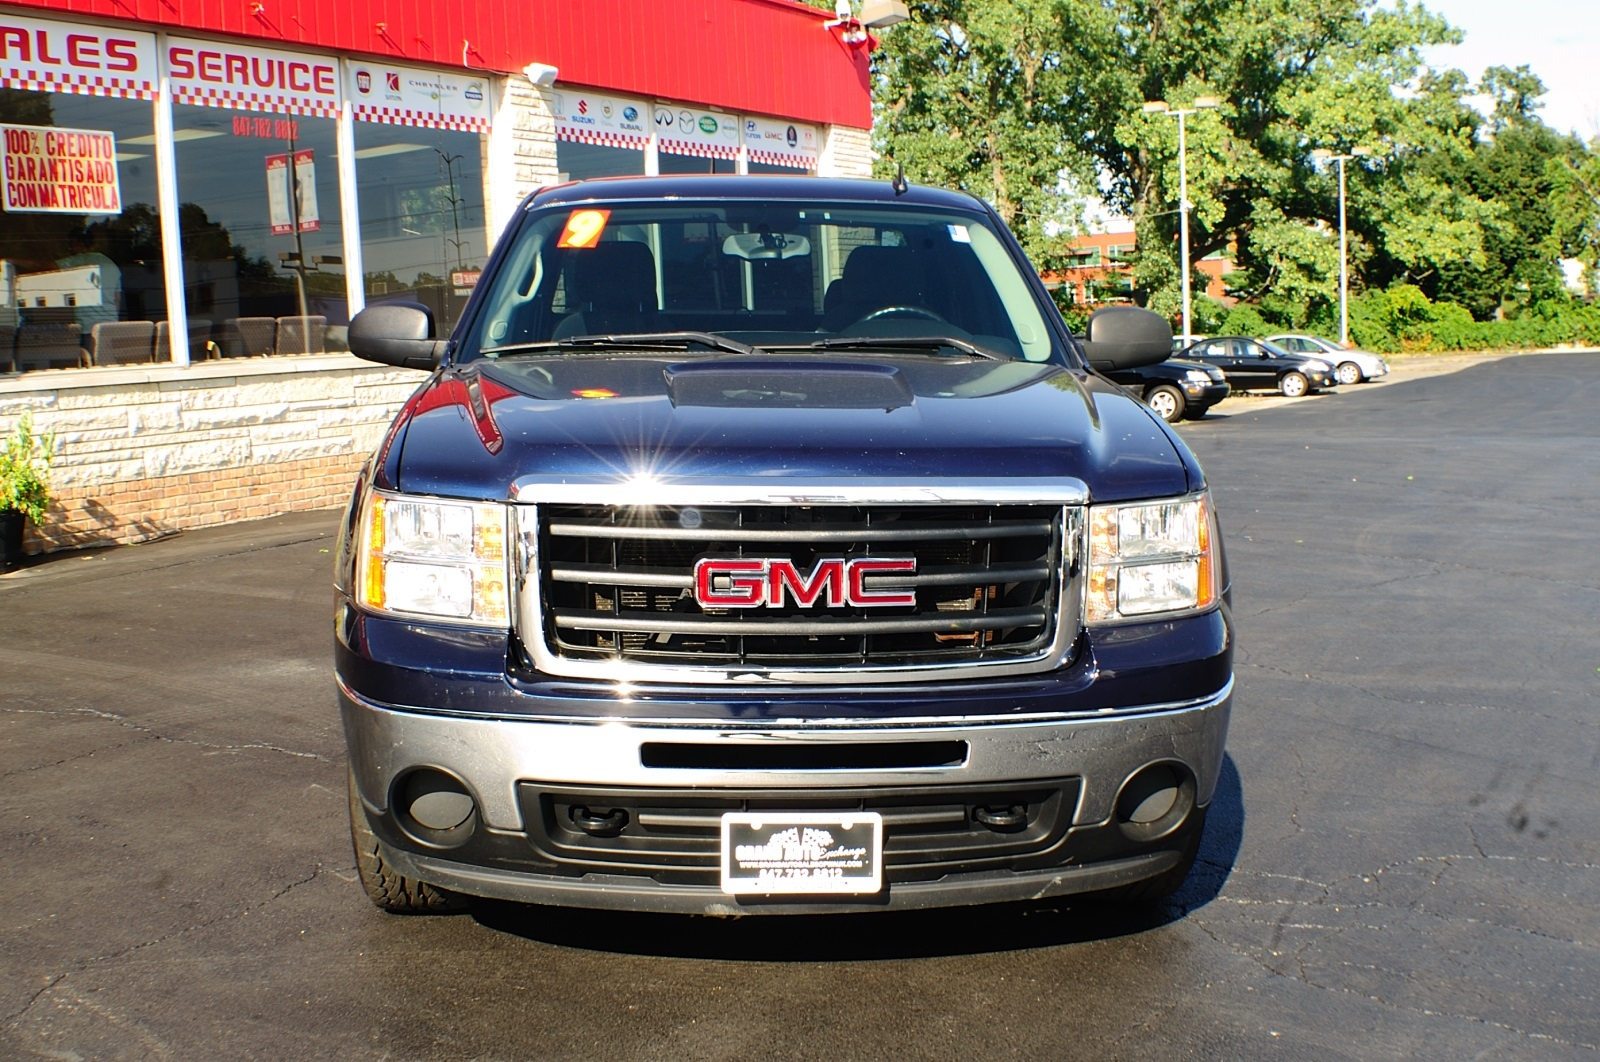 2009 GMC Sierra SLE Blue Used 4x4 Truck Sale Gurnee Kenosha Mchenry Chicago Illinois